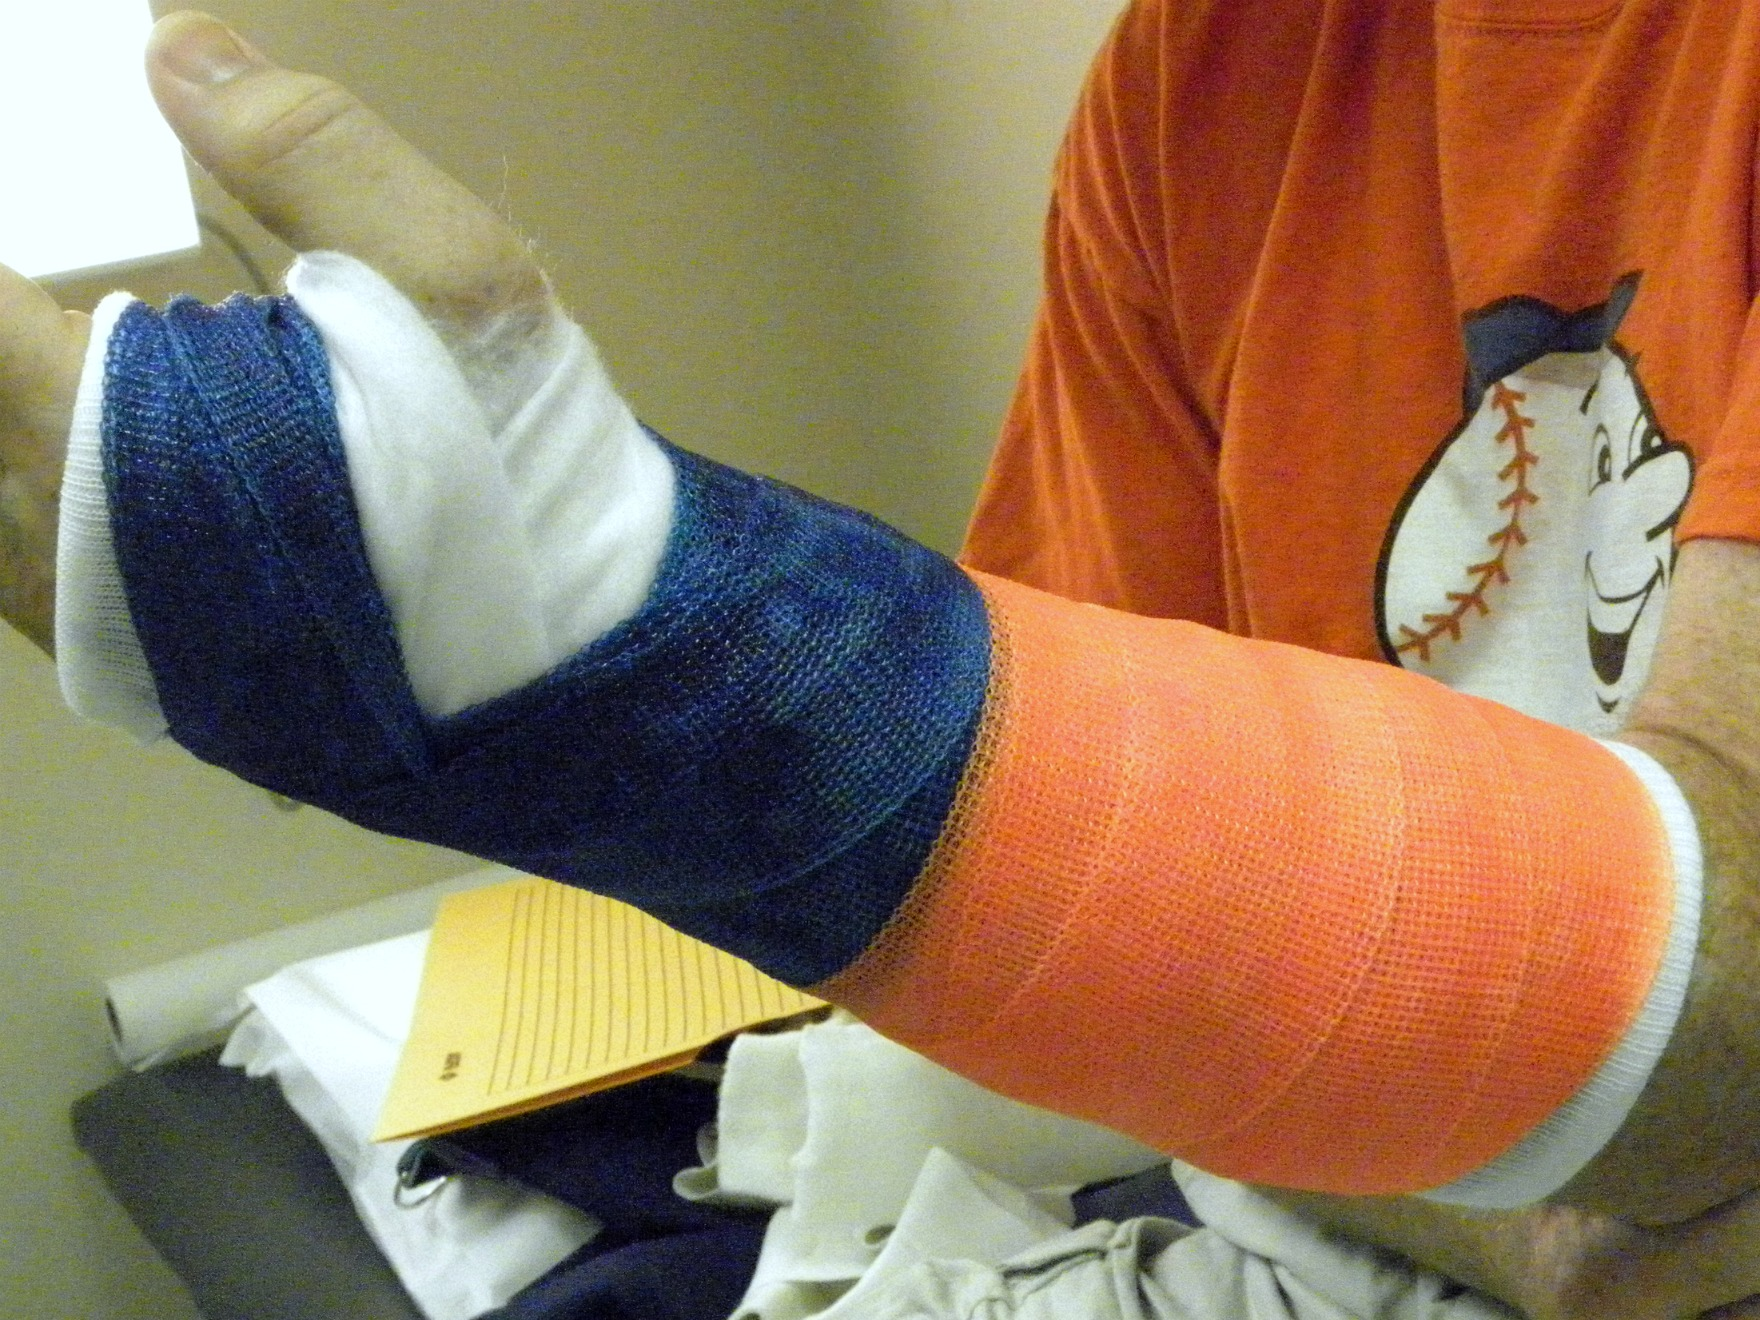 File:Day 220 - My Husband's Cast.jpg - Wikimedia Commons